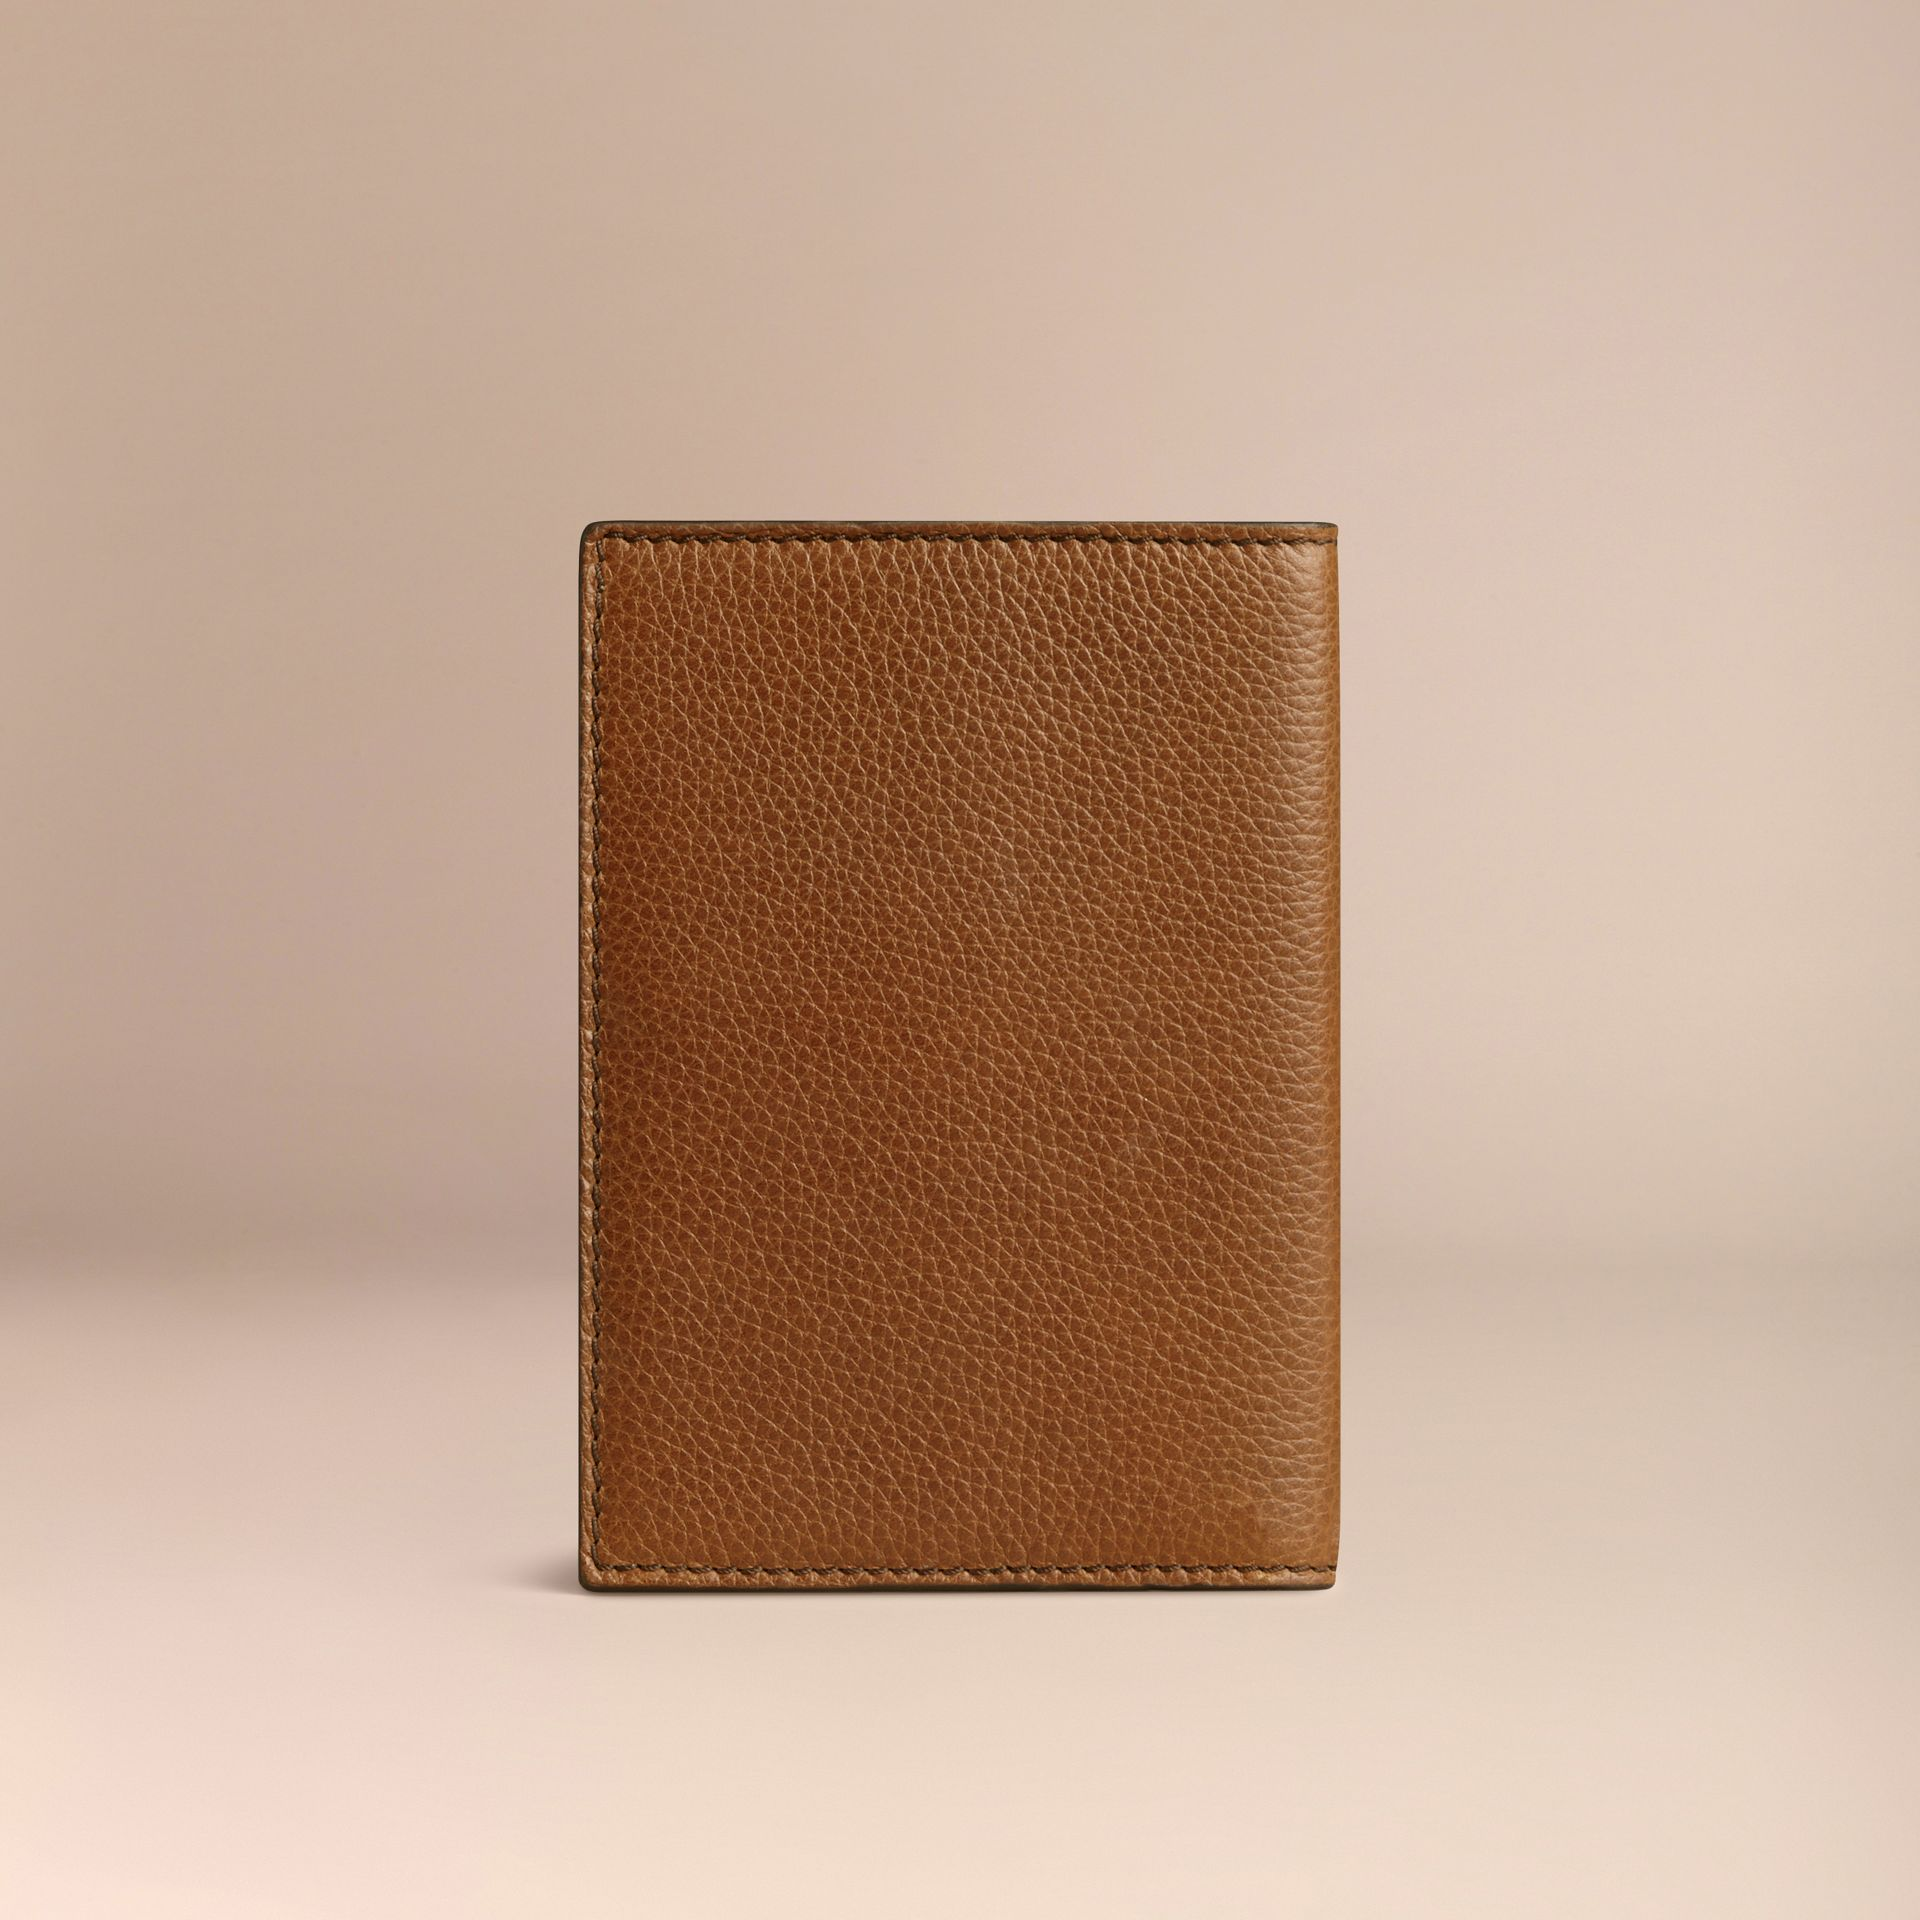 Grainy Leather Passport Cover in Tan - gallery image 2